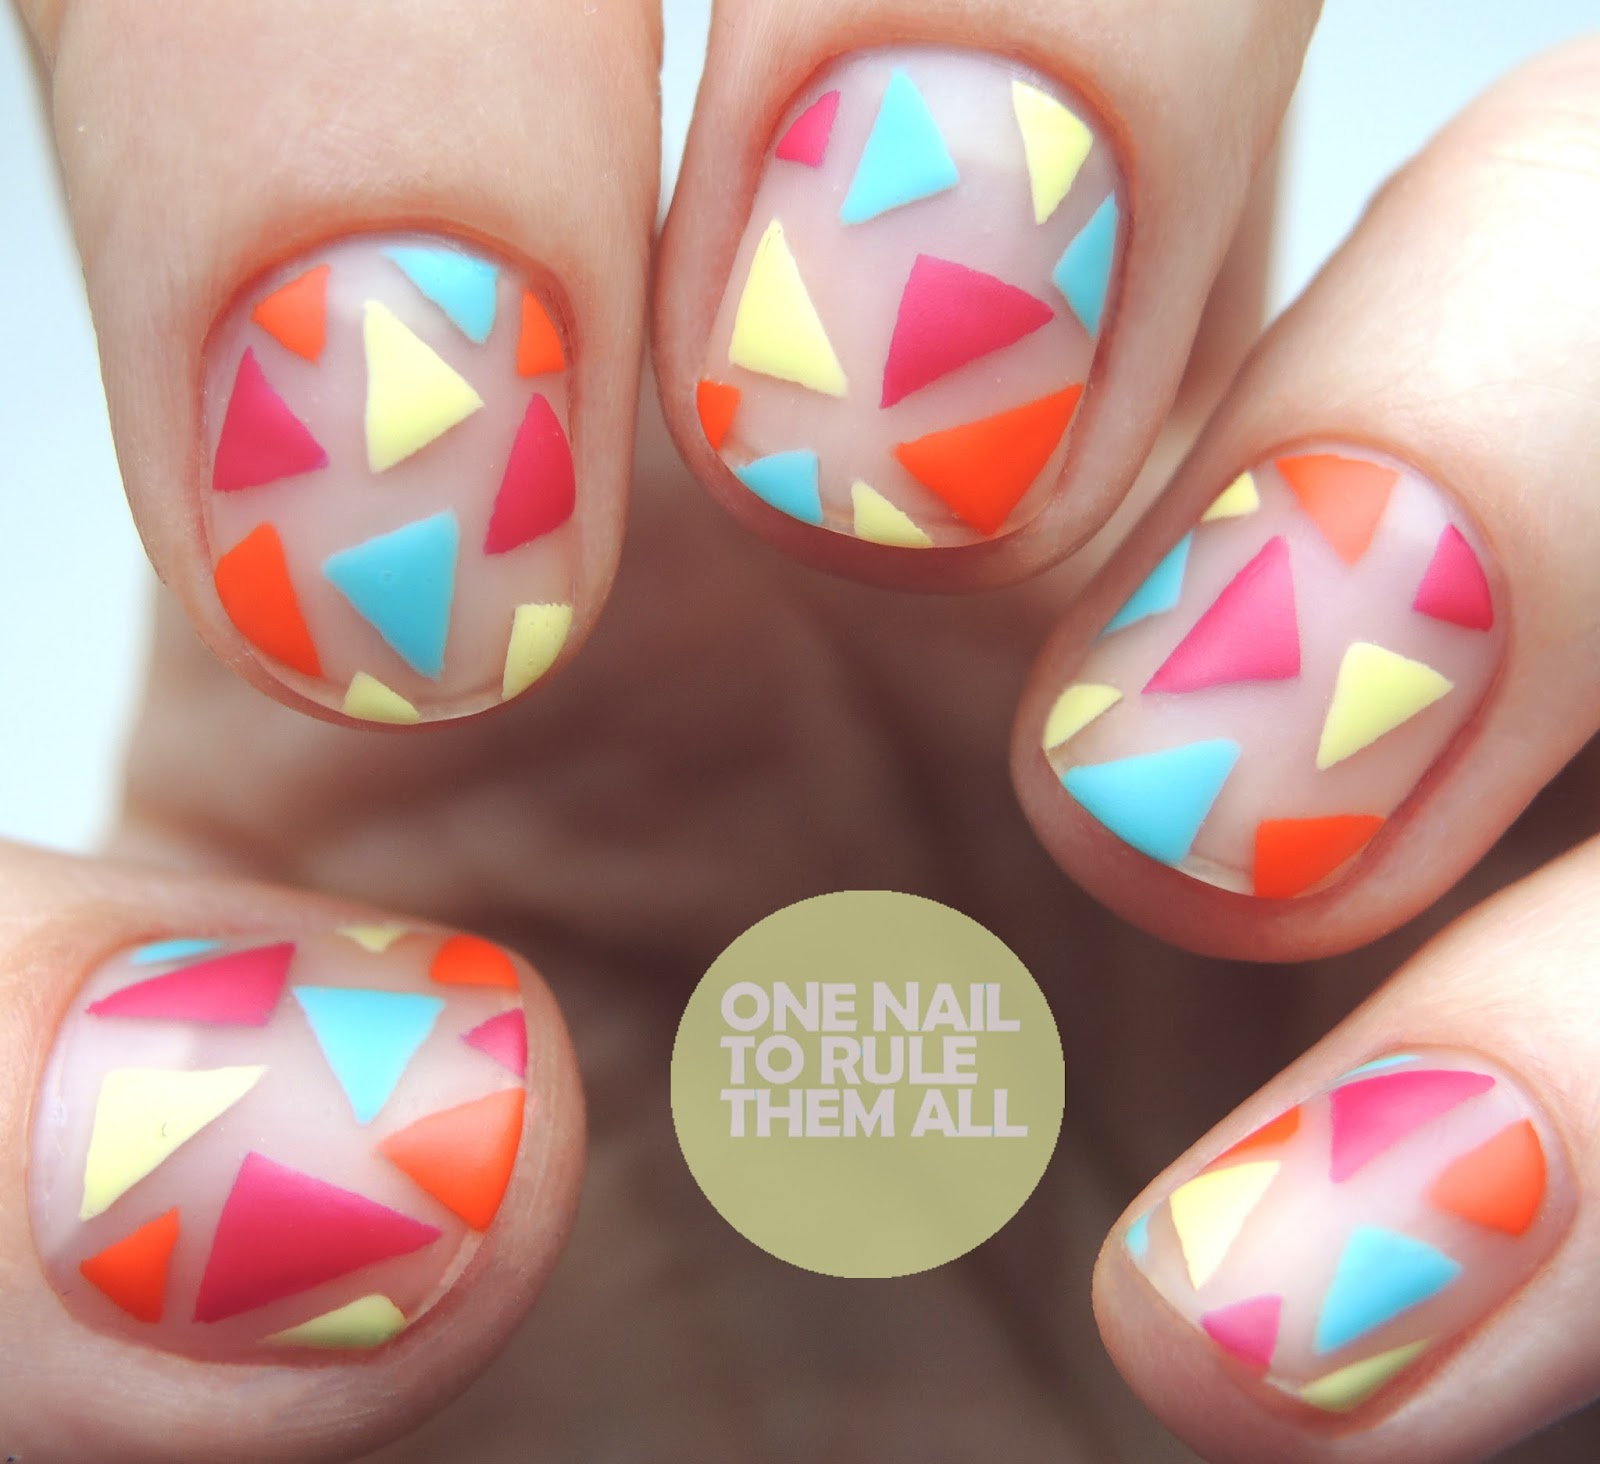 One Nail To Rule Them All: The Illustrated Nail Inspired - Direct ...